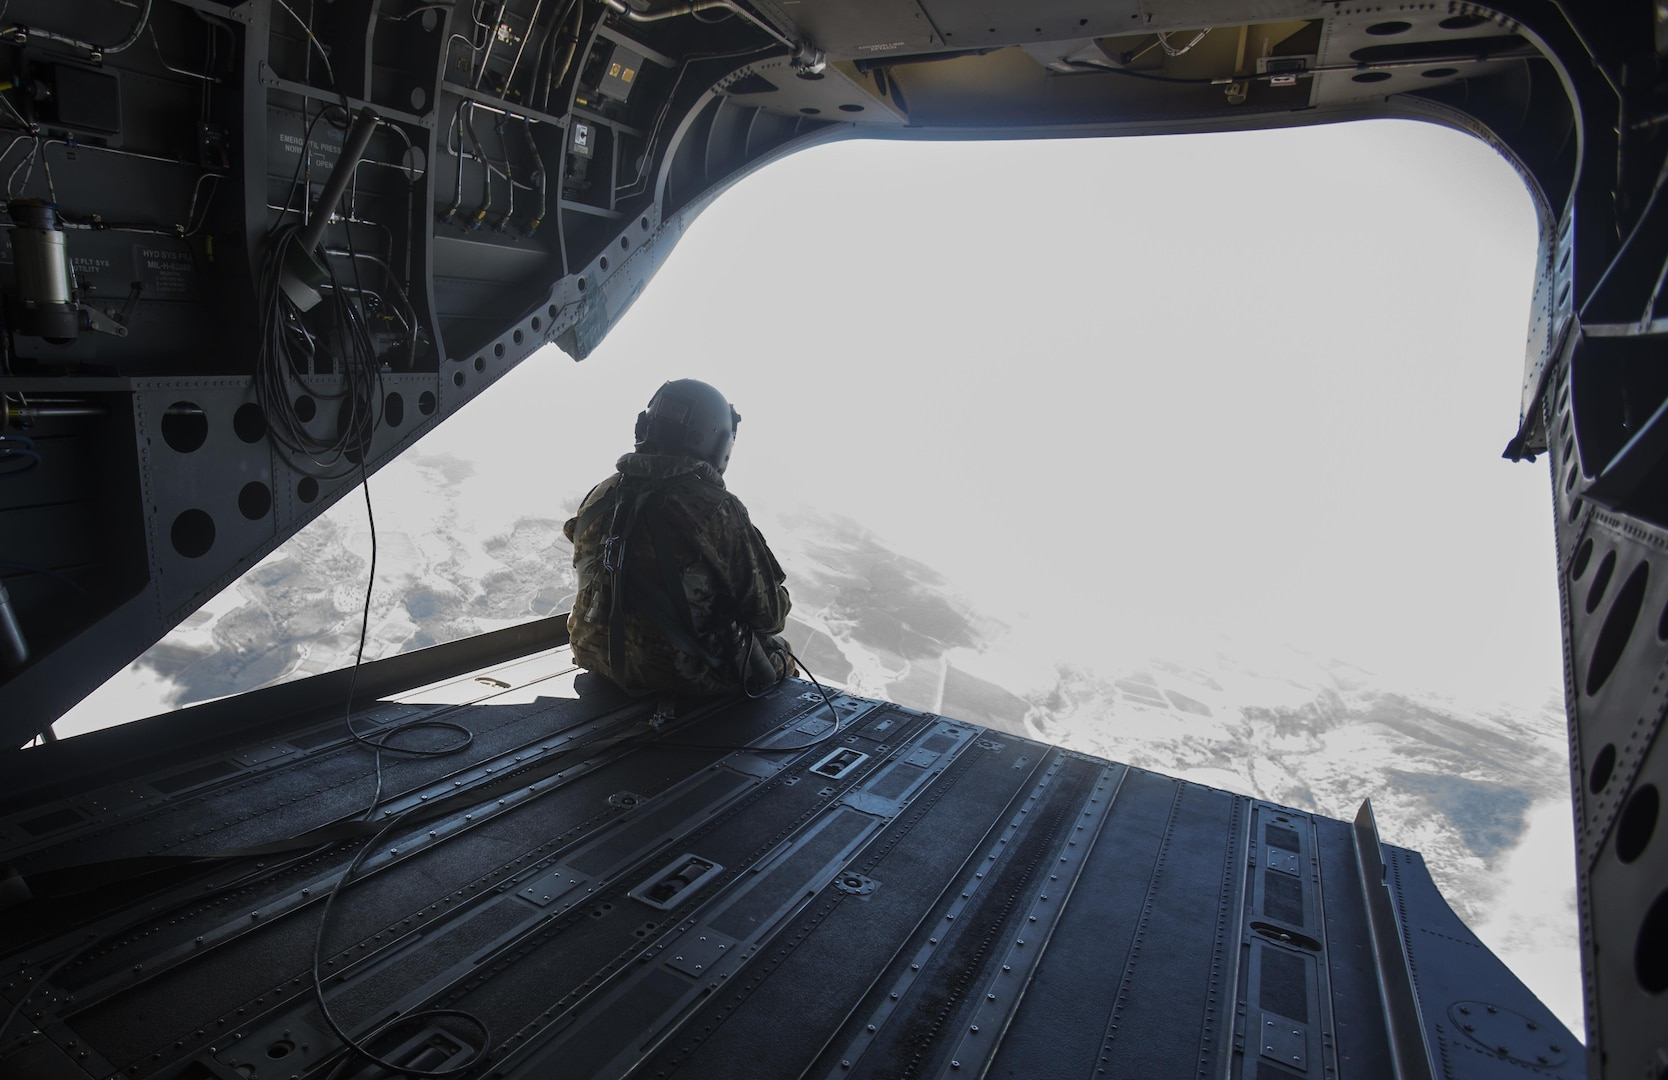 SCHOFIELD BARRACKS – A U.S. Army crew chief sits at the edge of a CH-47 Chinook helicopter ramp during a high altitude airborne jump at Schofield Barracks, July 14, 2017. Marines with 4th Force Reconnaissance Company trained with U.S. Army Special Forces to maintain proficiency in completing static line and high altitude free fall airborne jumps. (U.S. Marine Corps photo by Lance Cpl. Isabelo Tabanguil)